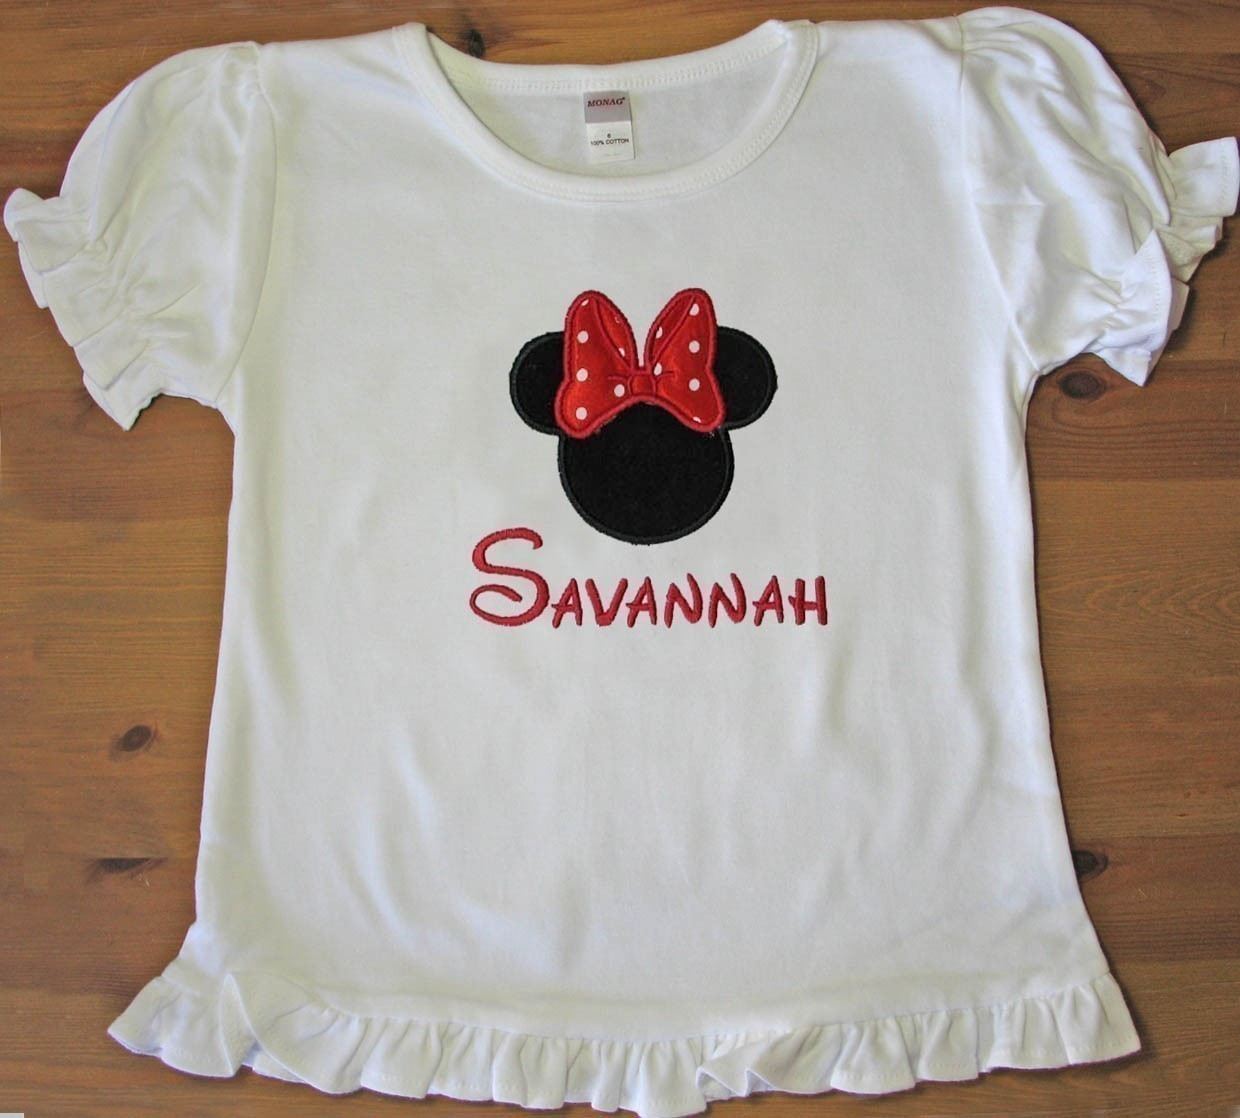 T shirt printing and embroidery services